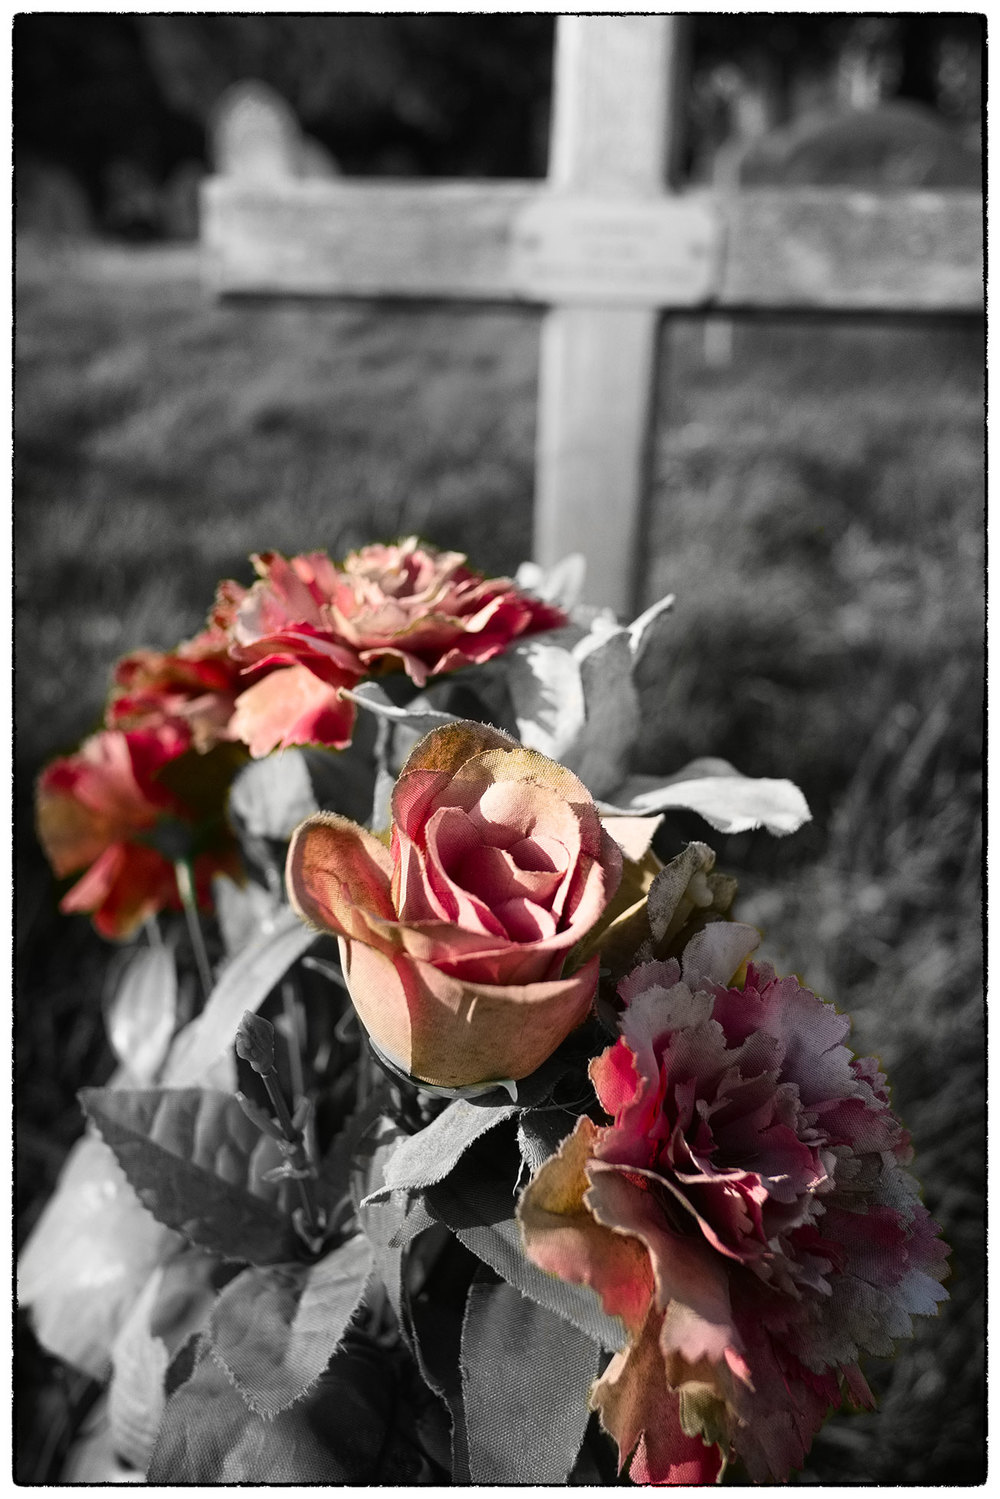 Artificial flowers in front of a simple cross.